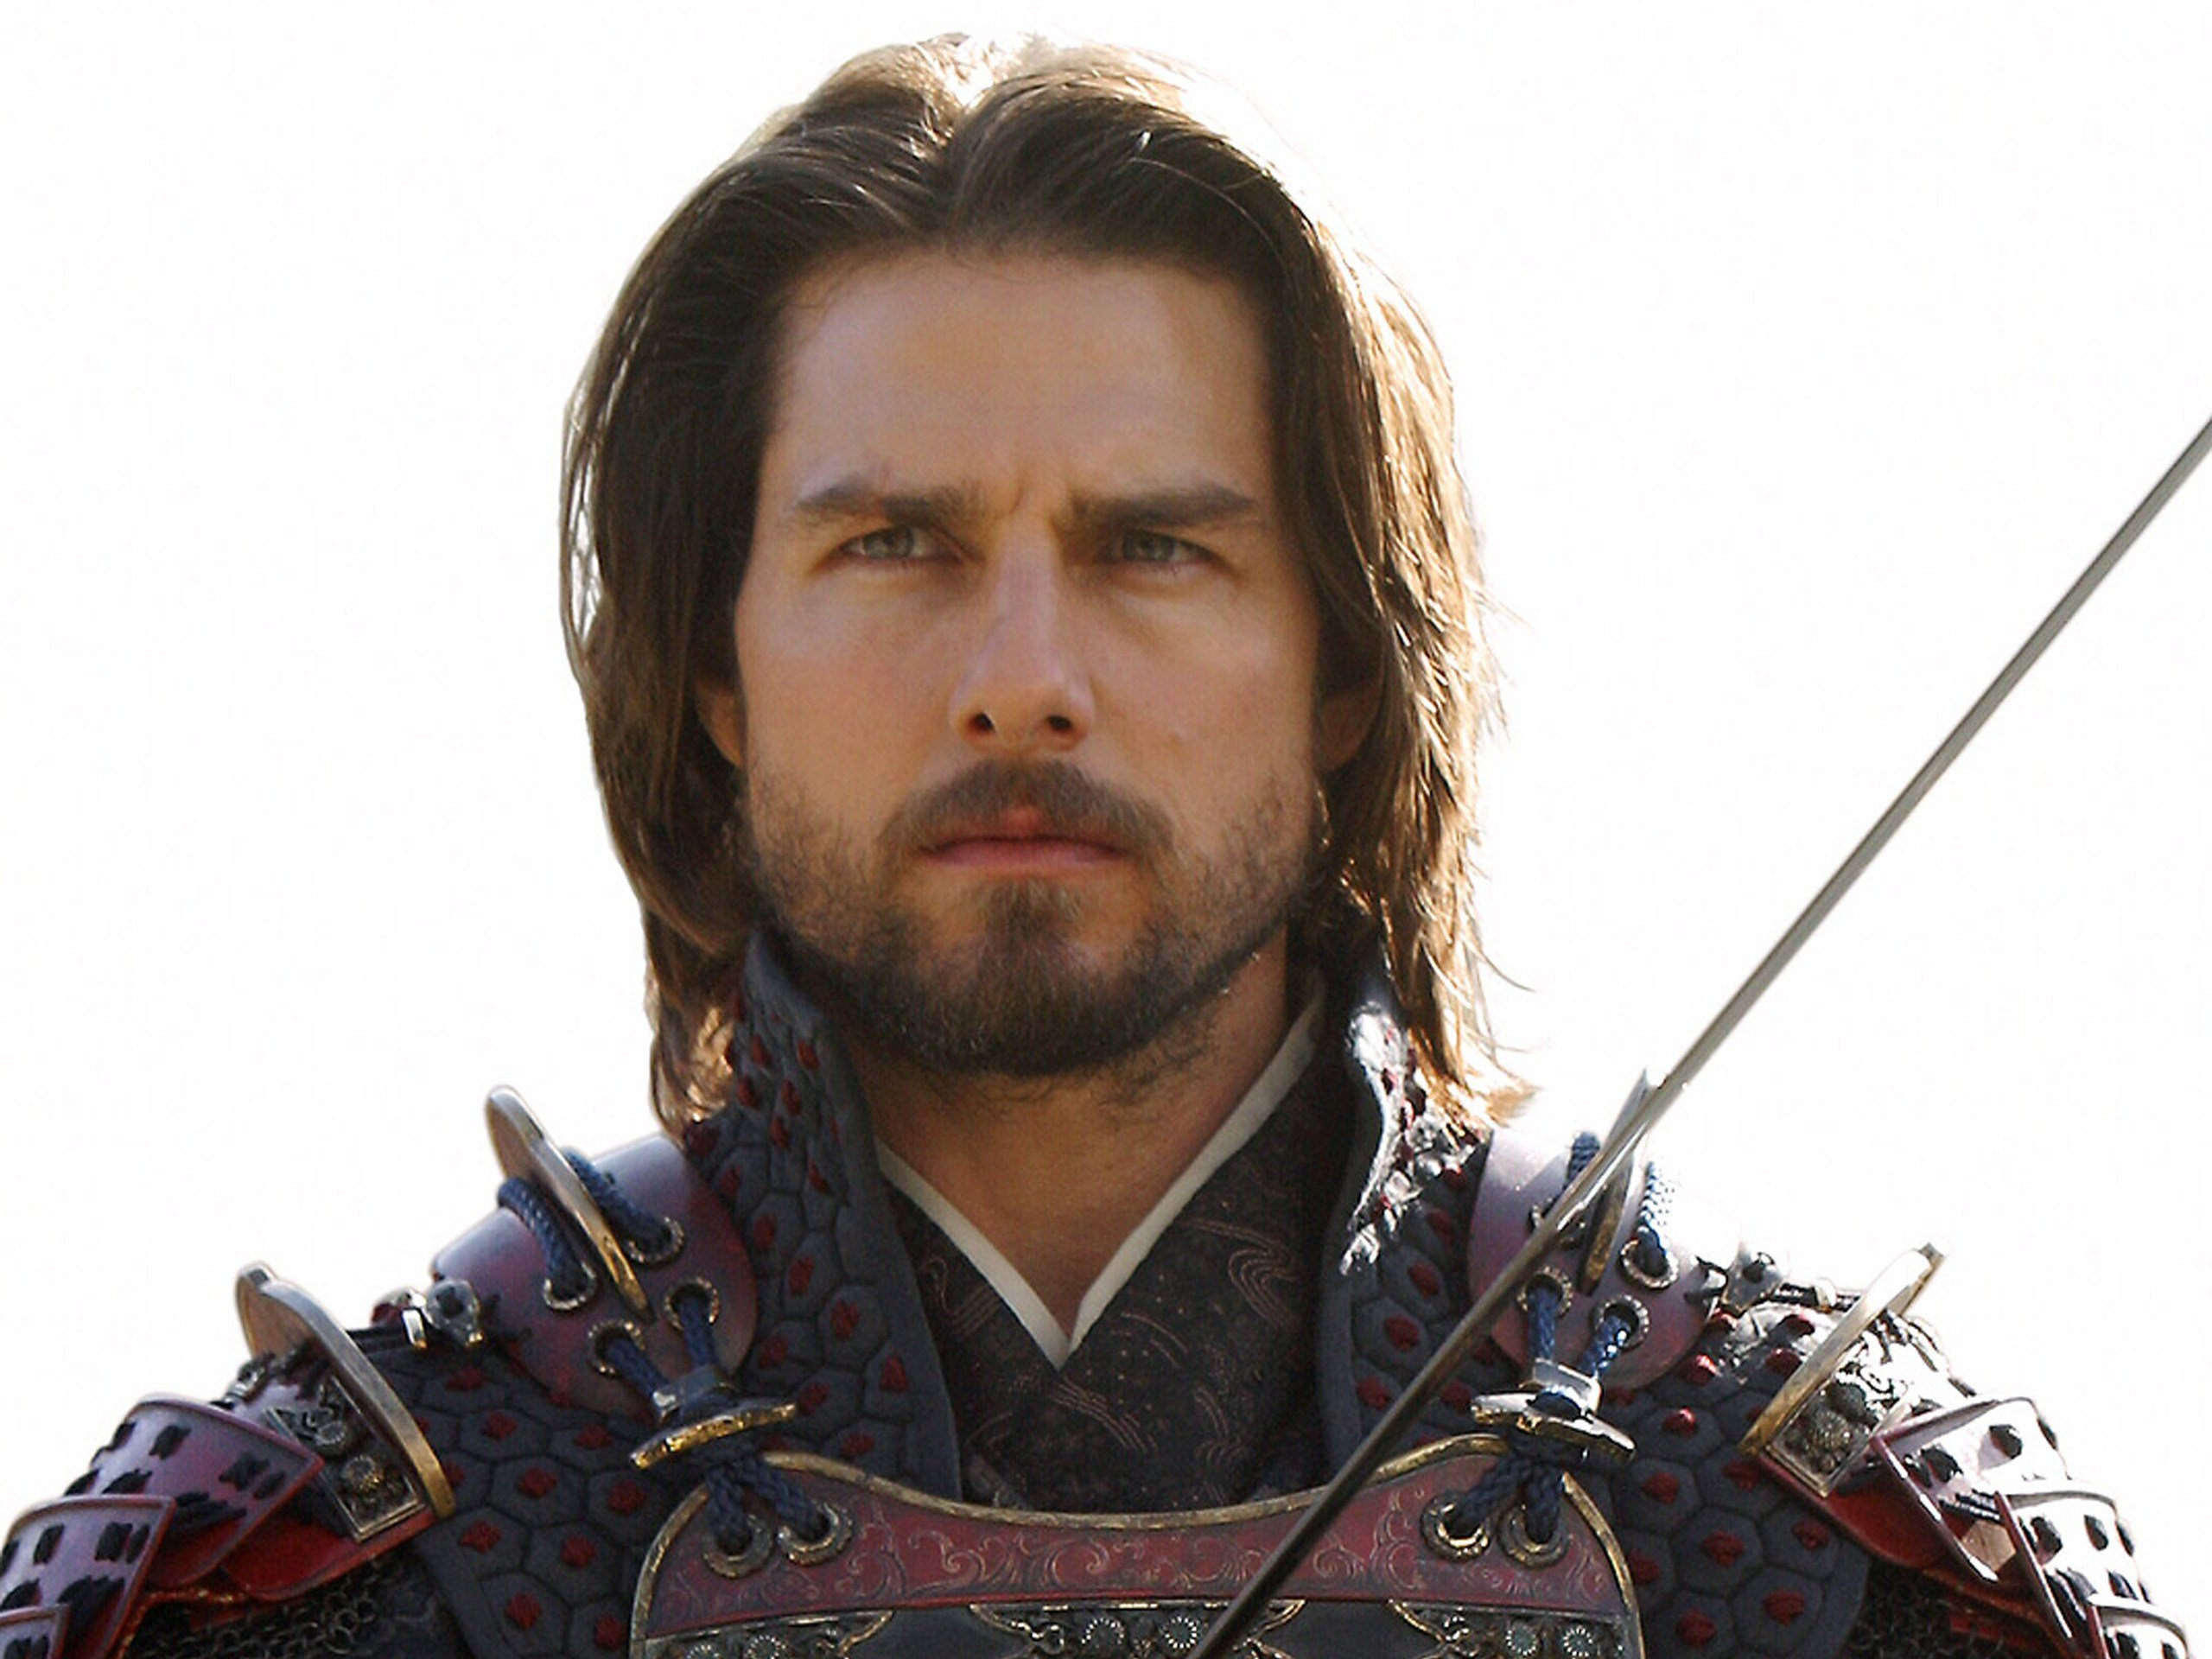 The Best The Last Samurai 2003 Tom Cruise Ken Watanabe Pictures